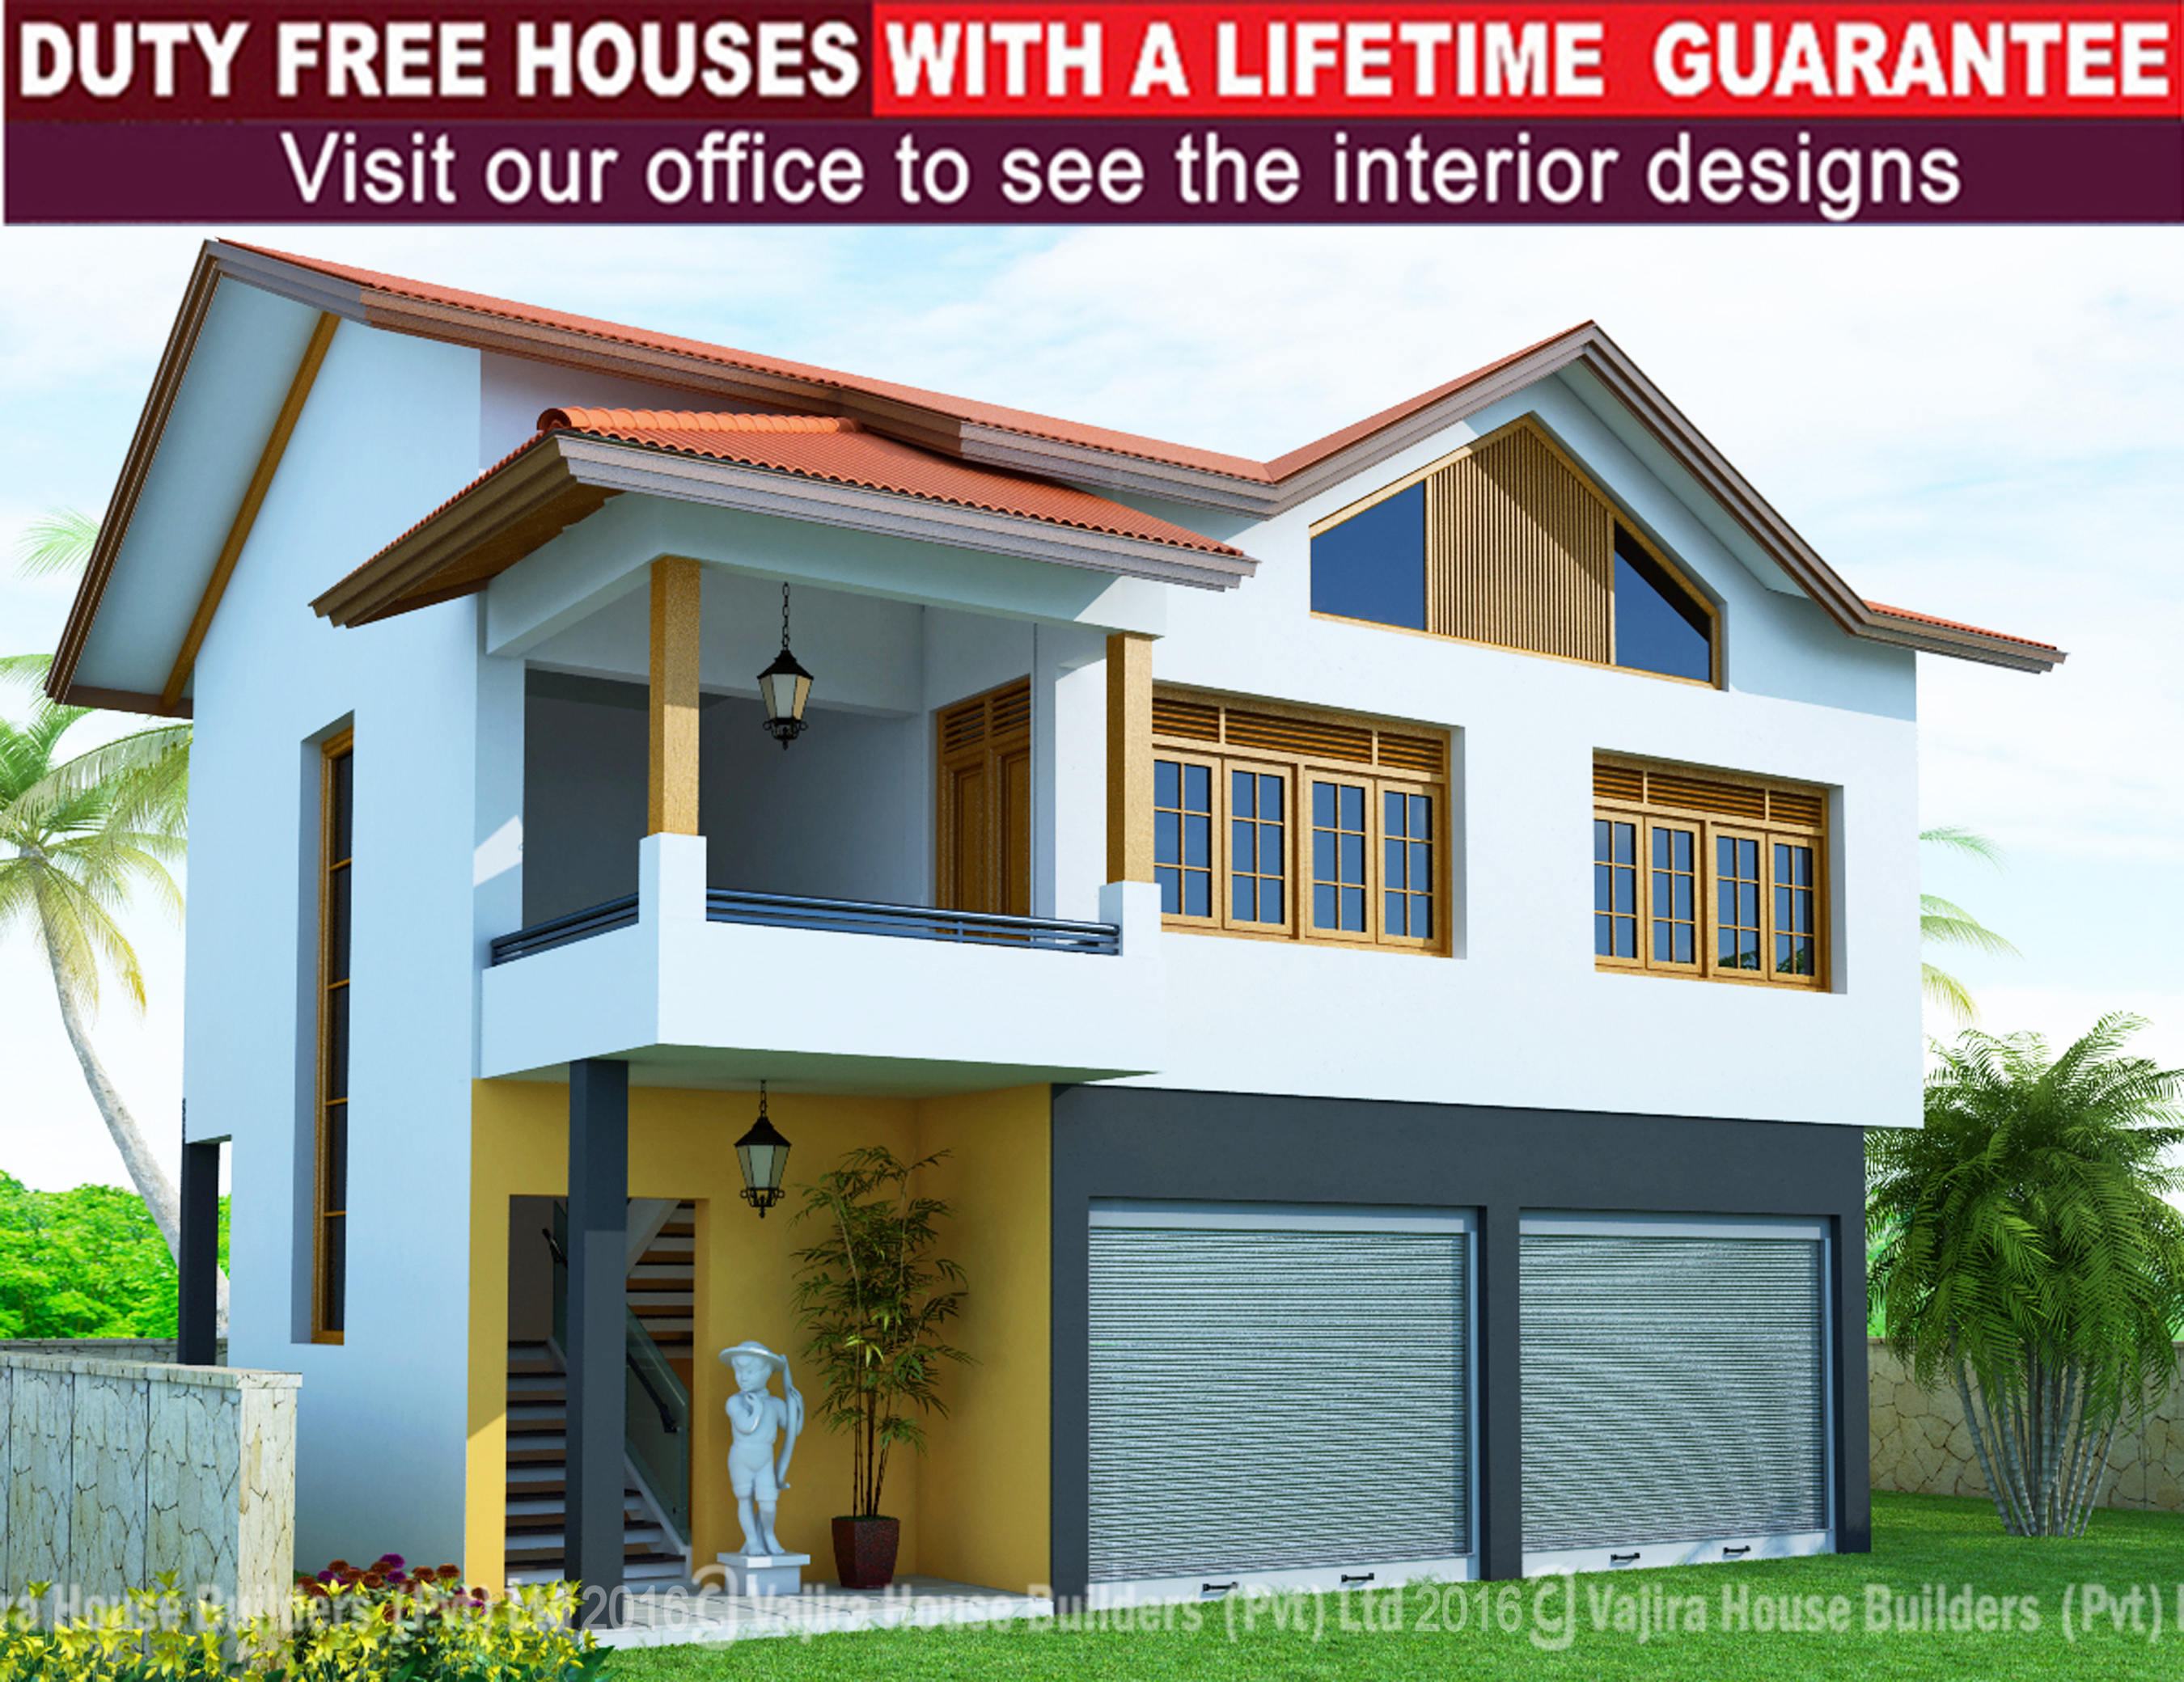 Ts 192 vajira house builders private limited best for List of house builders